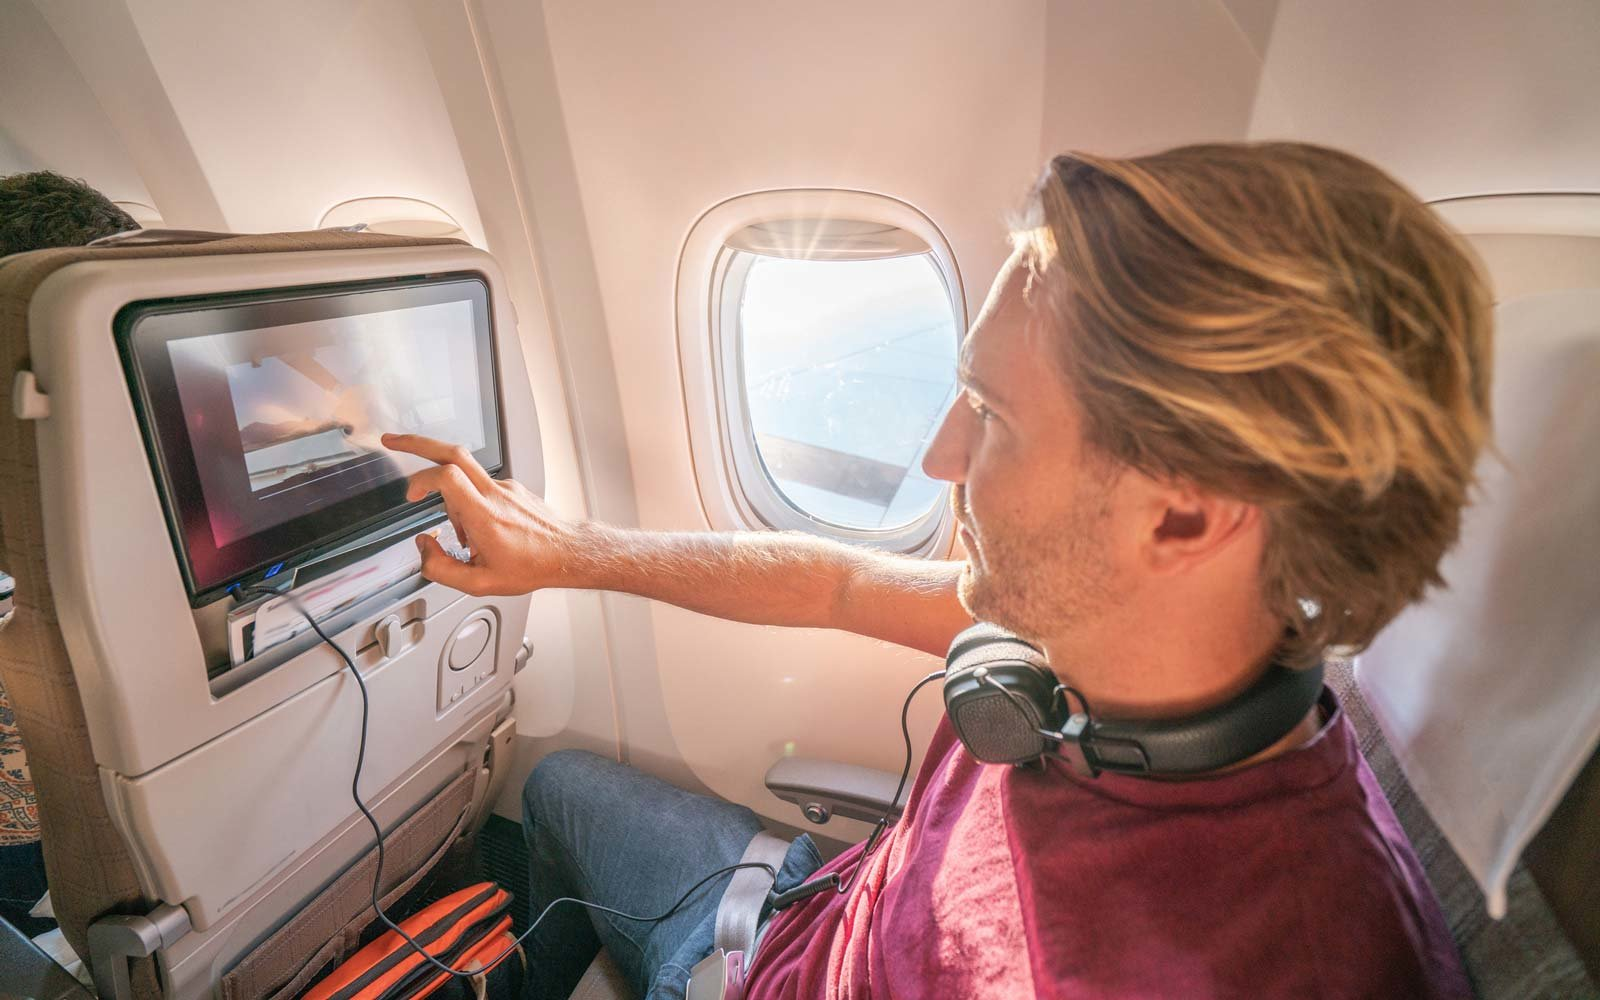 Young man in airplane using onboard entertainment